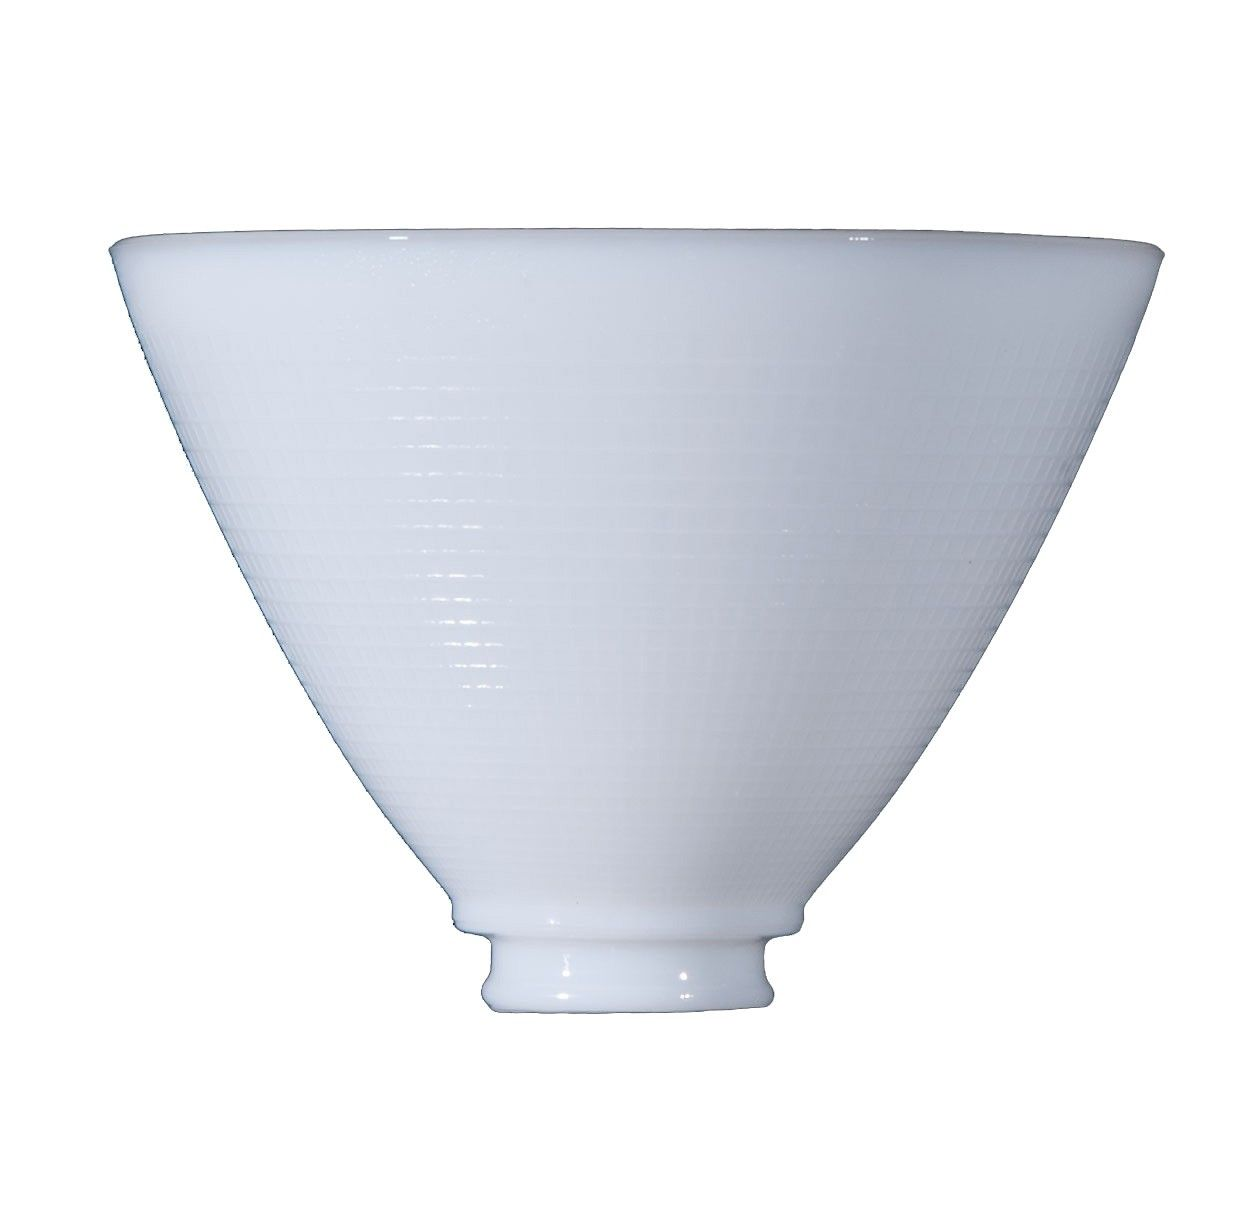 8 Inch I E S Opal Glass Reflector Shade 2 1 4 Inch Fitter Reflectors Glass Torchiere Floor Lamp